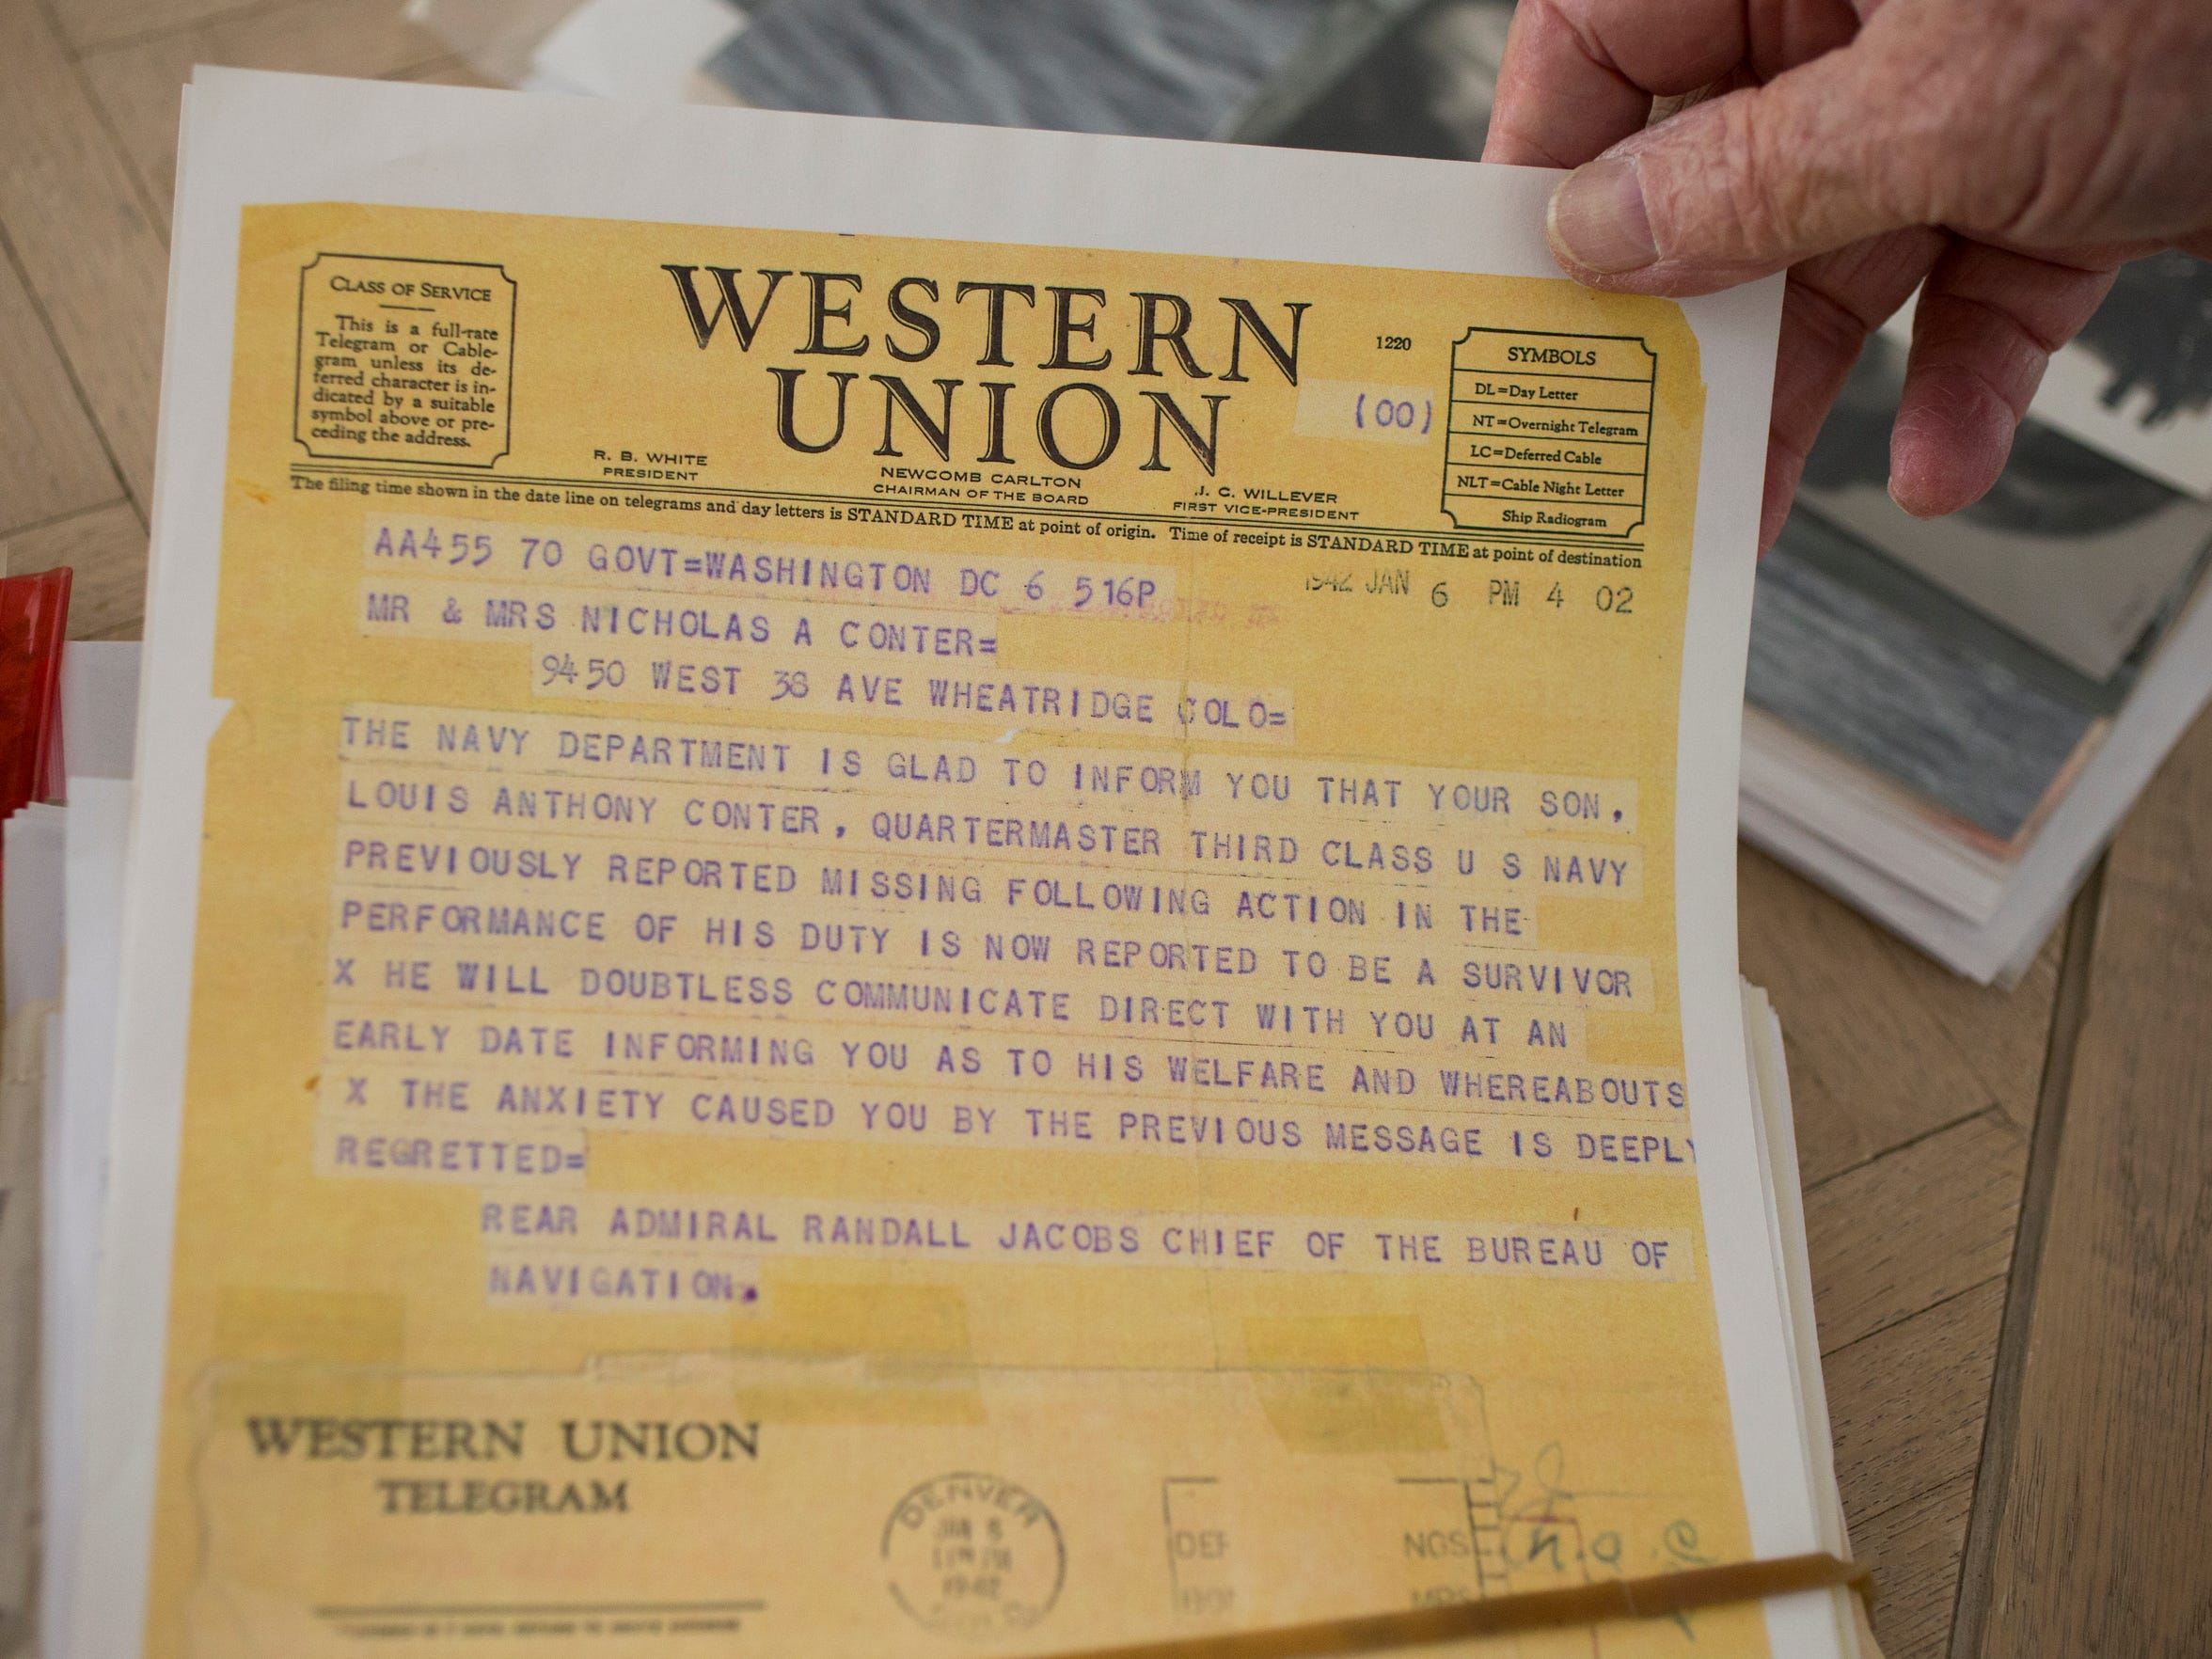 A second telegram to the Conters.